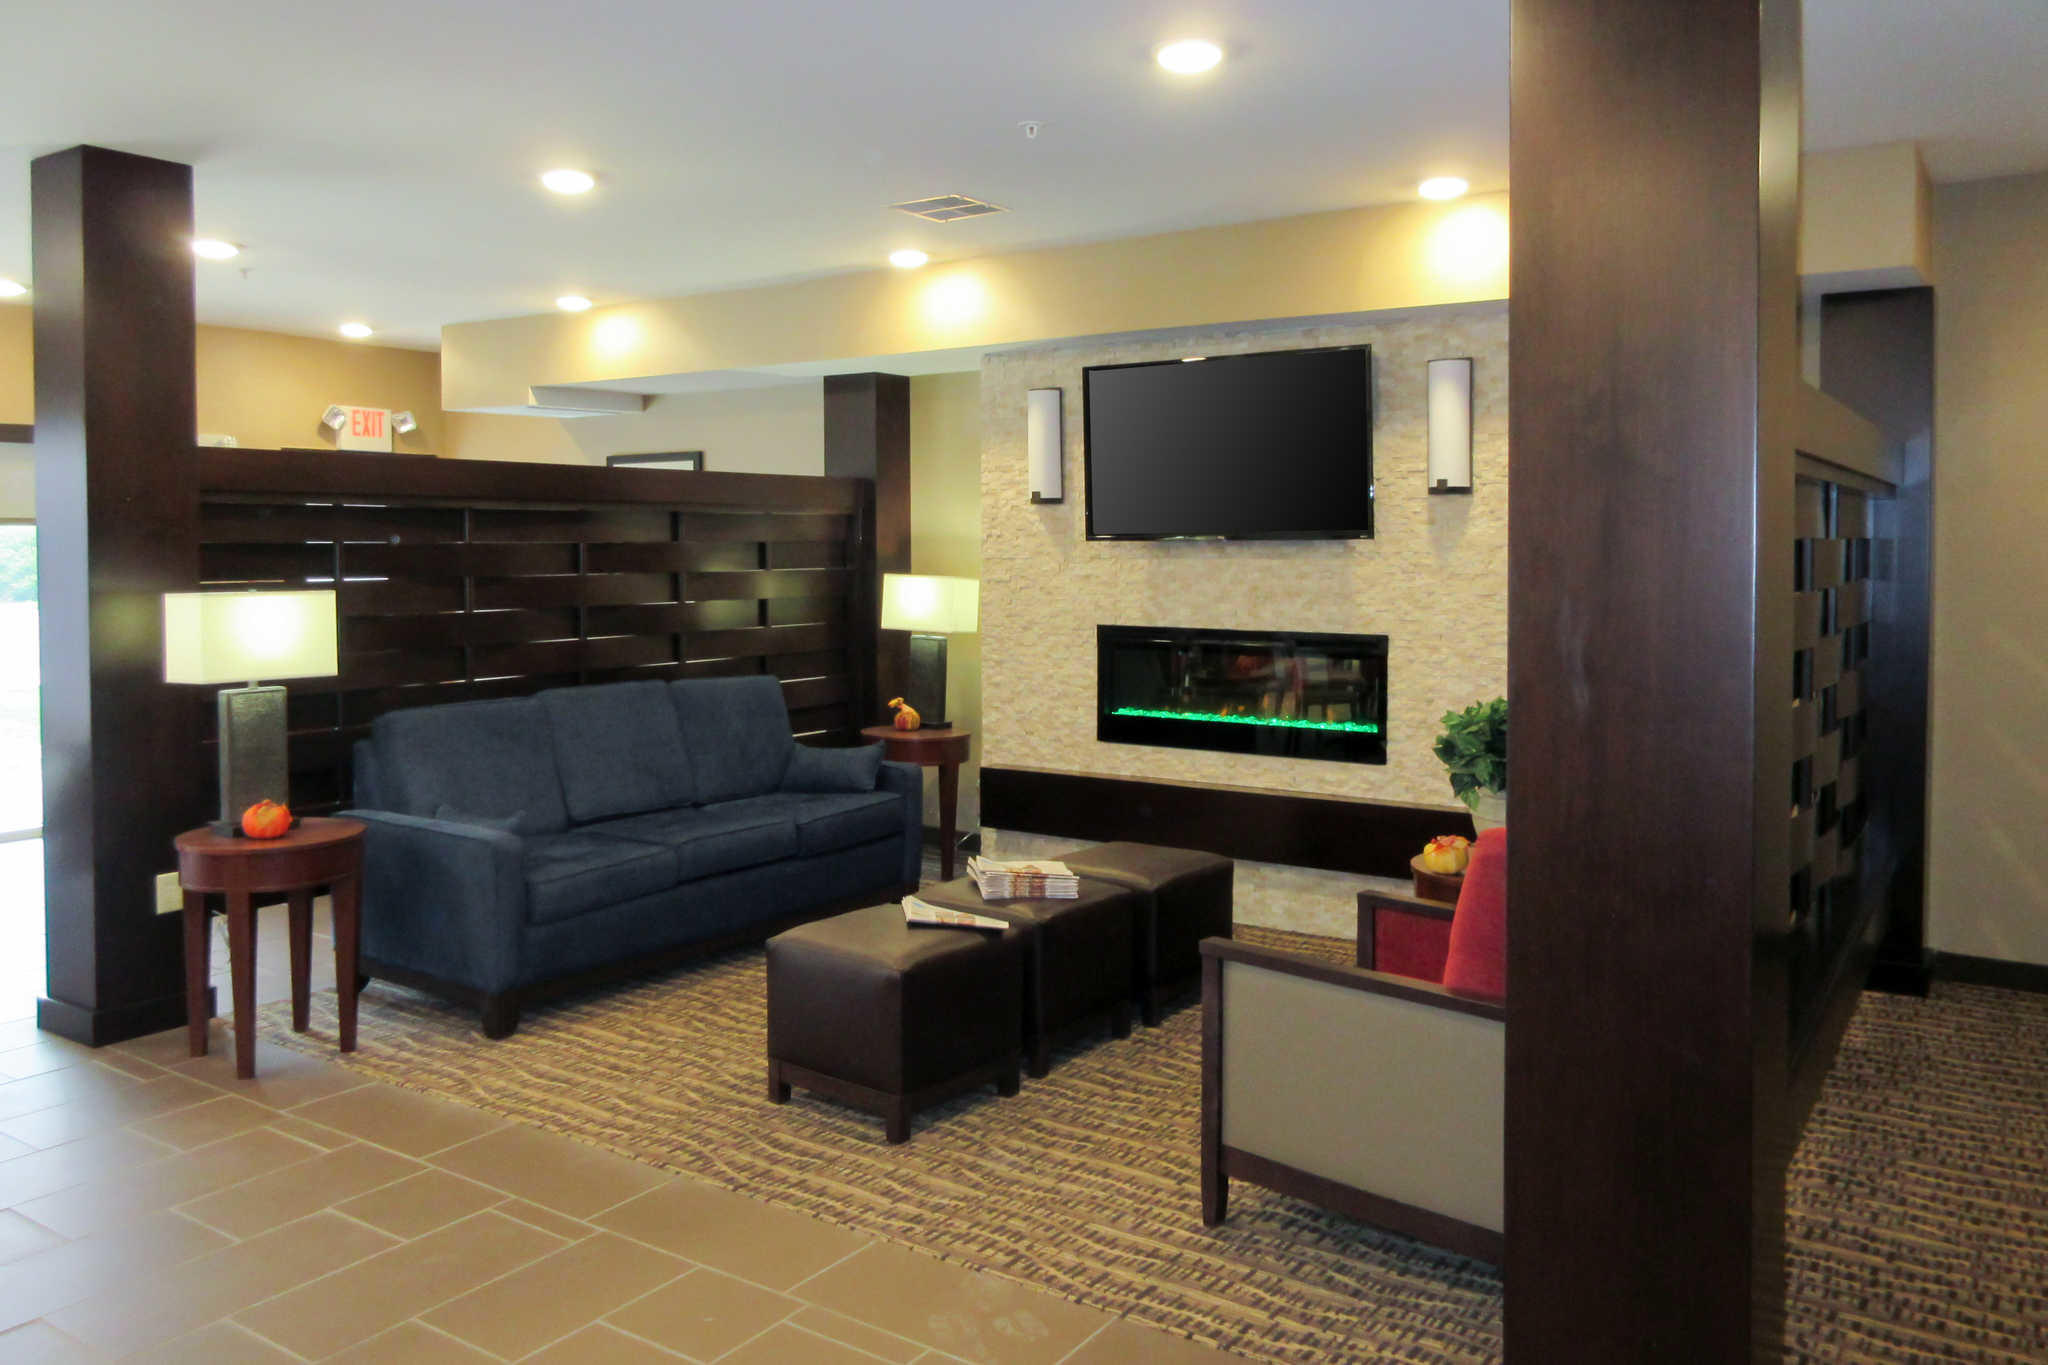 Comfort Inn Amp Suites Northern Kentucky In Wilder Ky 41076